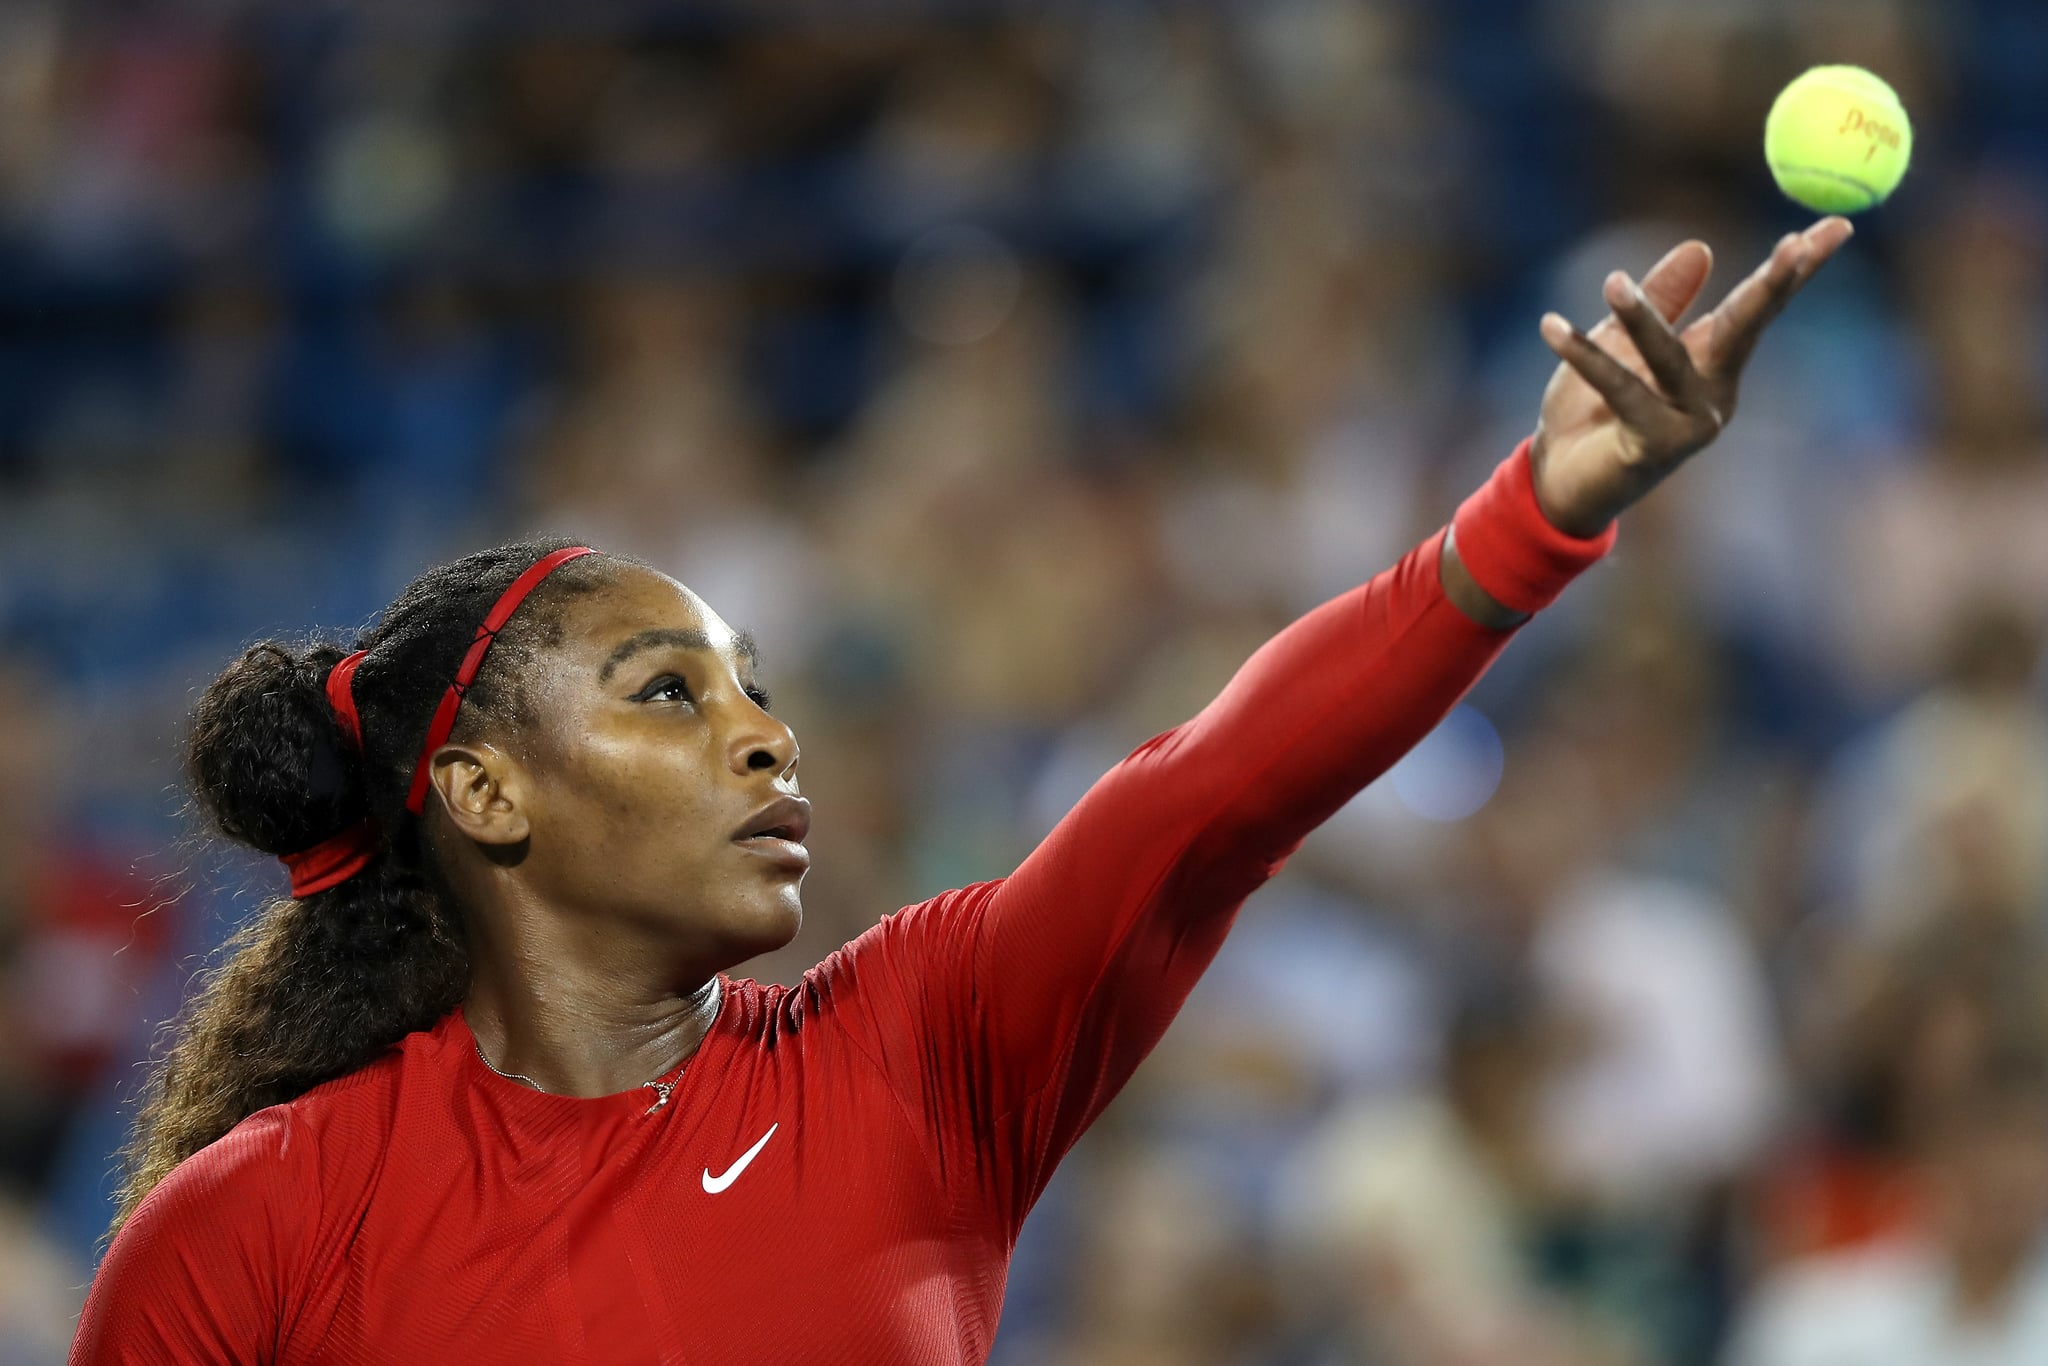 MASON, OH - AUGUST 14:  Serena Williams serves to Petra Kvitova of Czech Republic during the Western & Southern Open at Lindner Family Tennis Center on August 14, 2018 in Mason, Ohio.  (Photo by Matthew Stockman/Getty Images)